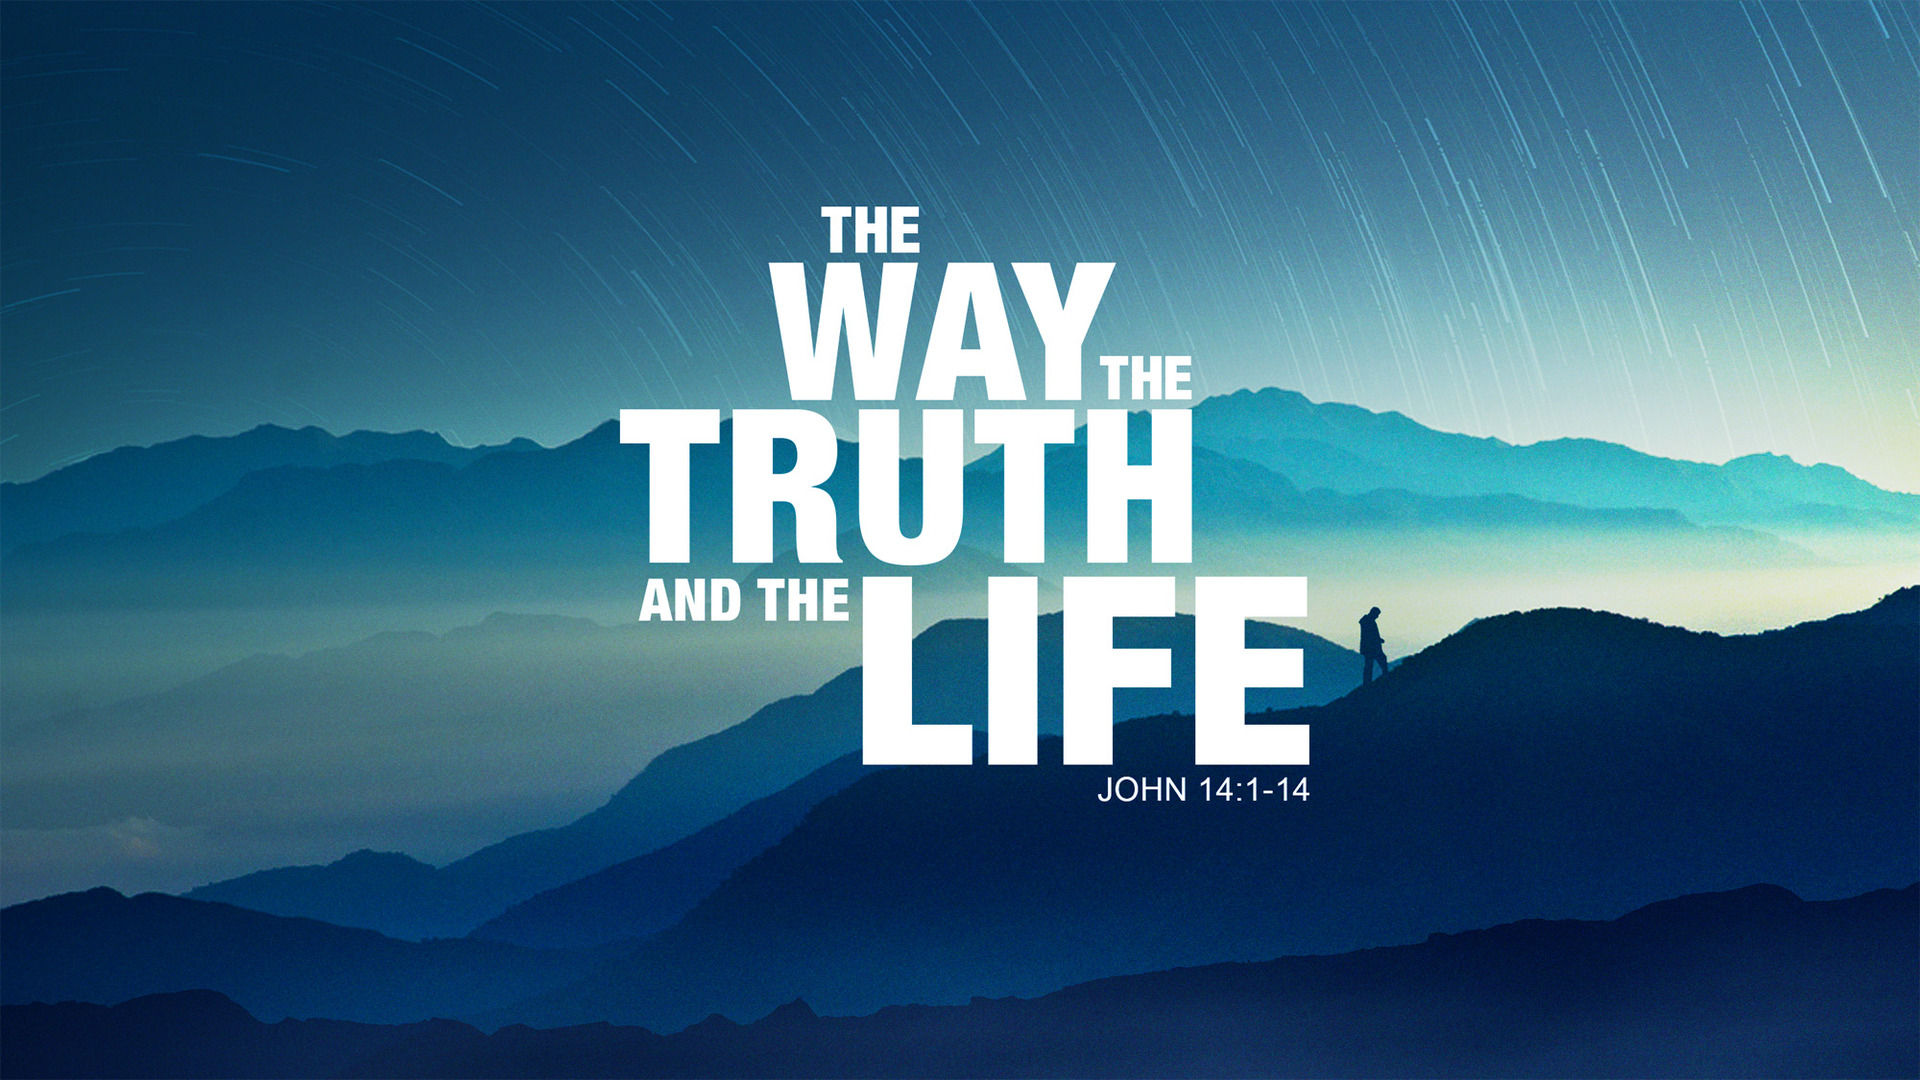 The Way, Truth, Life